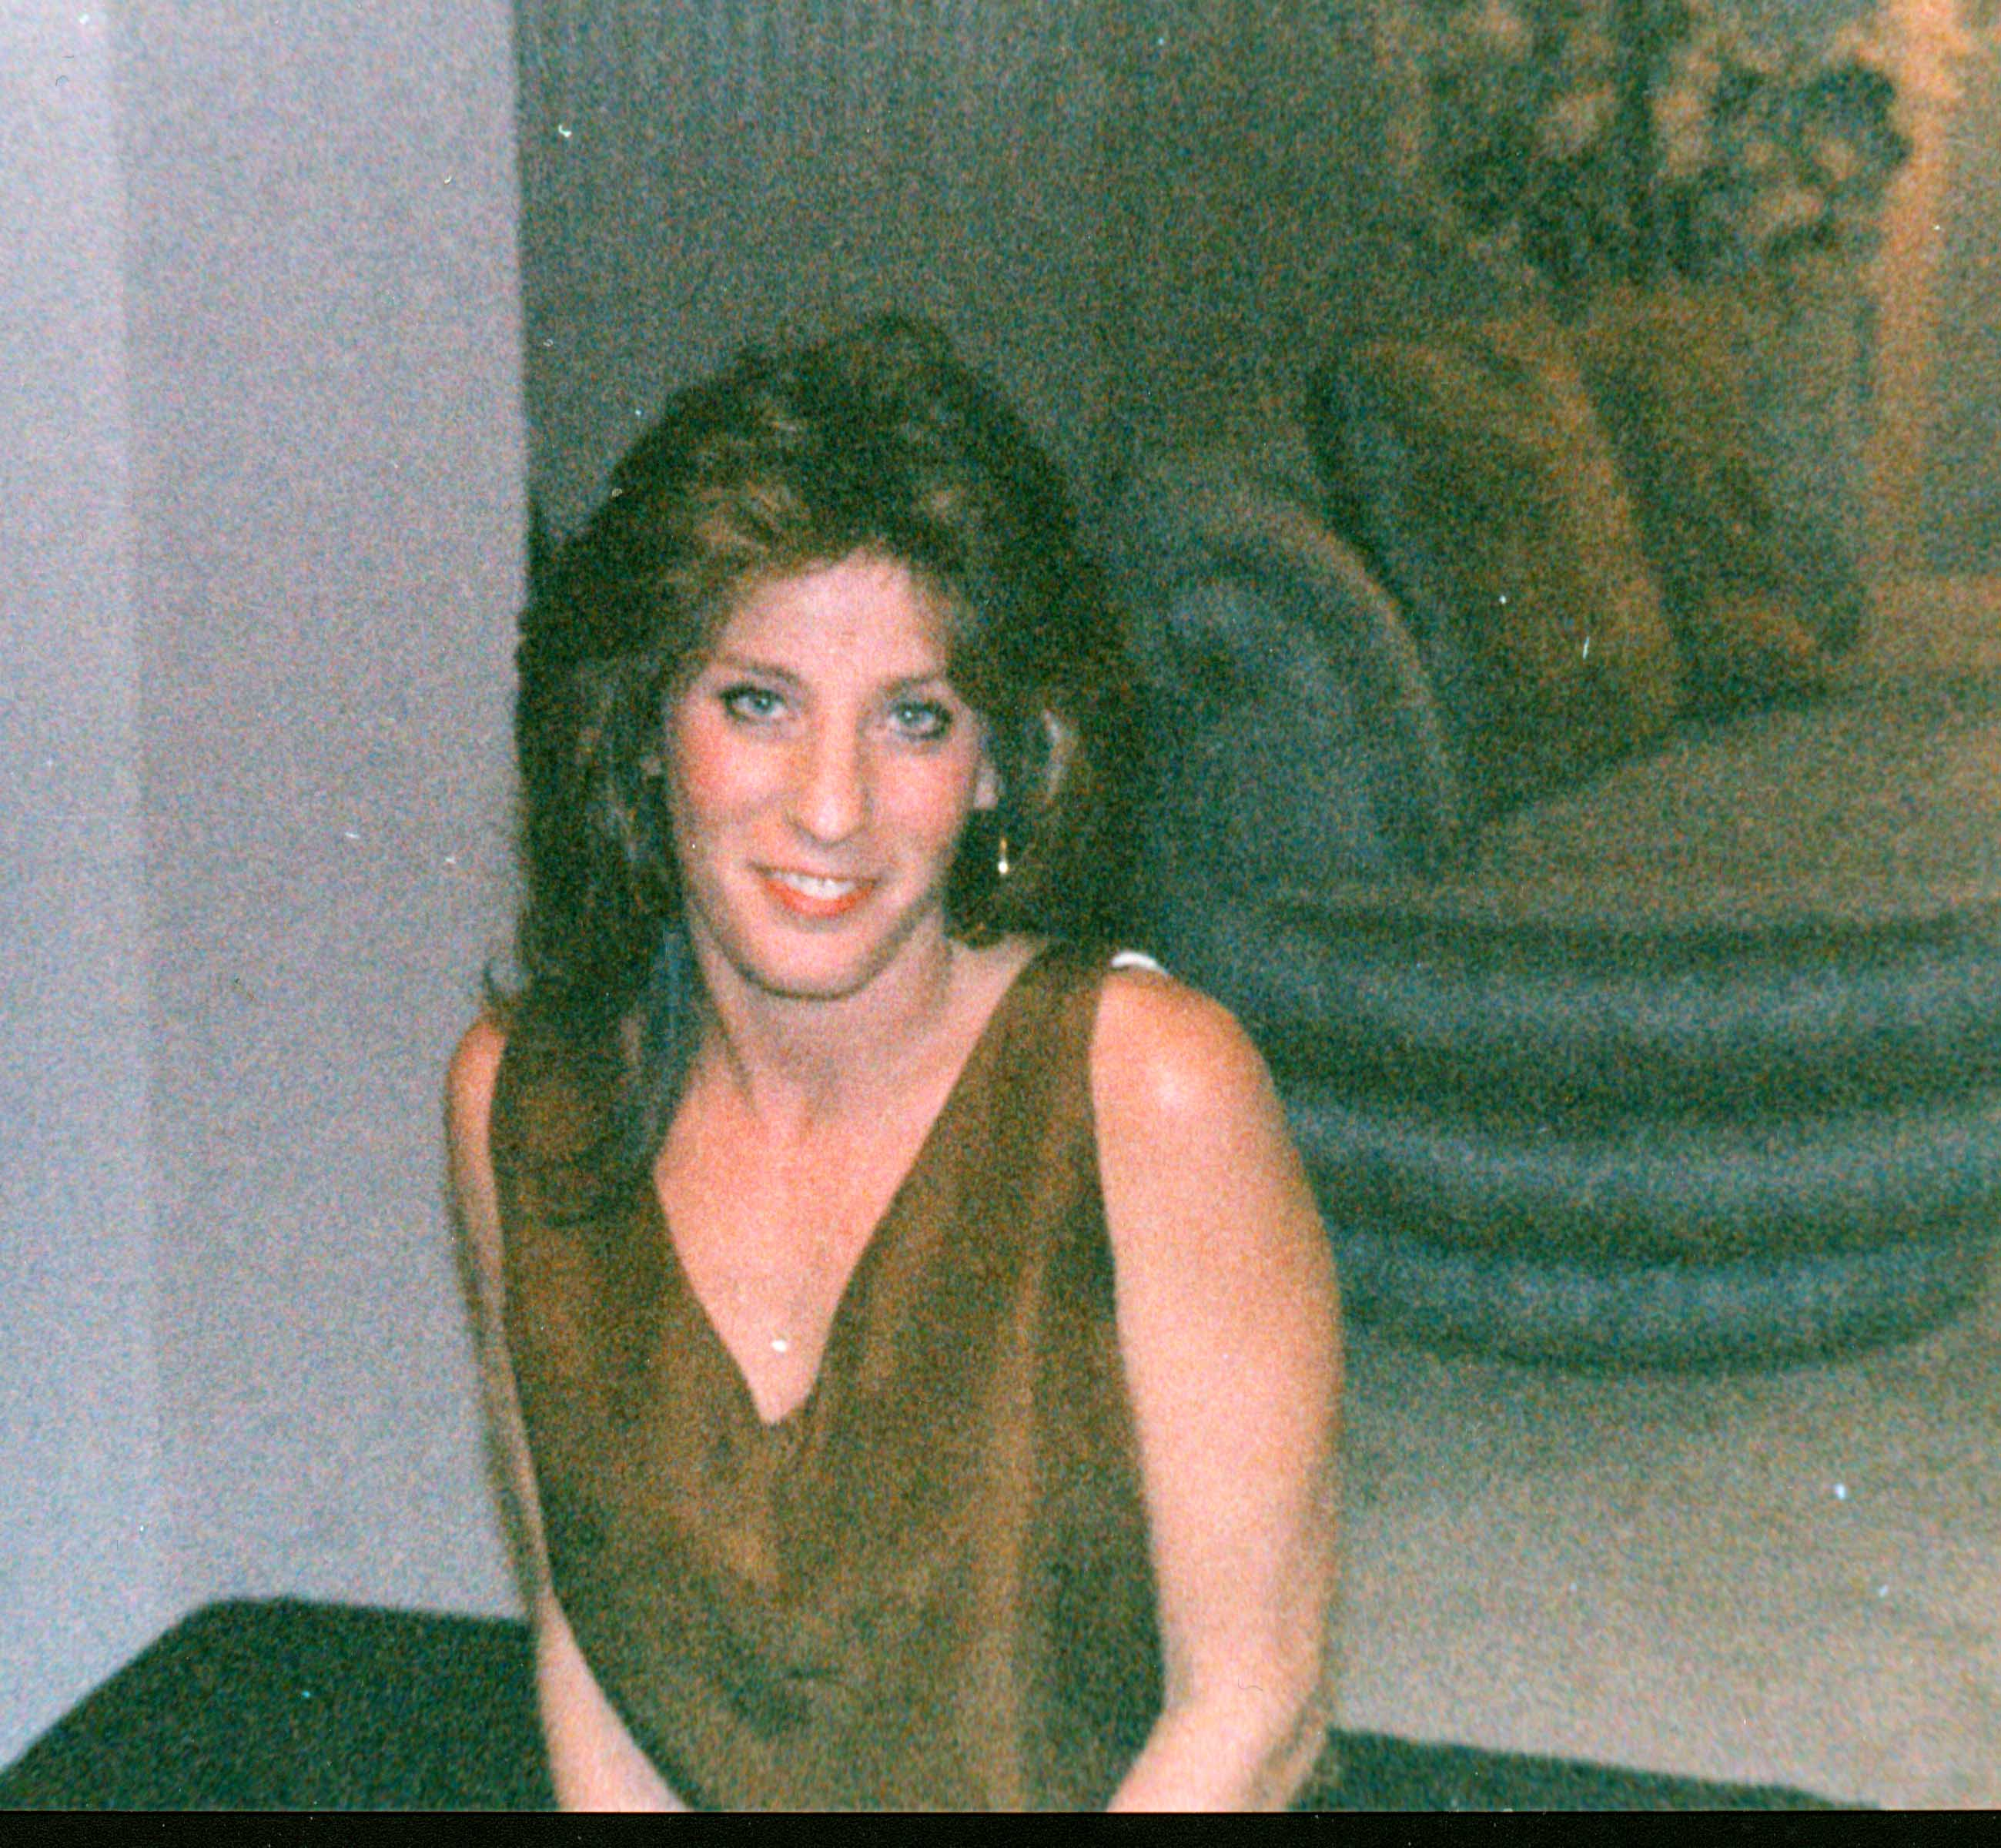 Michelle Lisa Adler 9/22/69 - 4/7/03